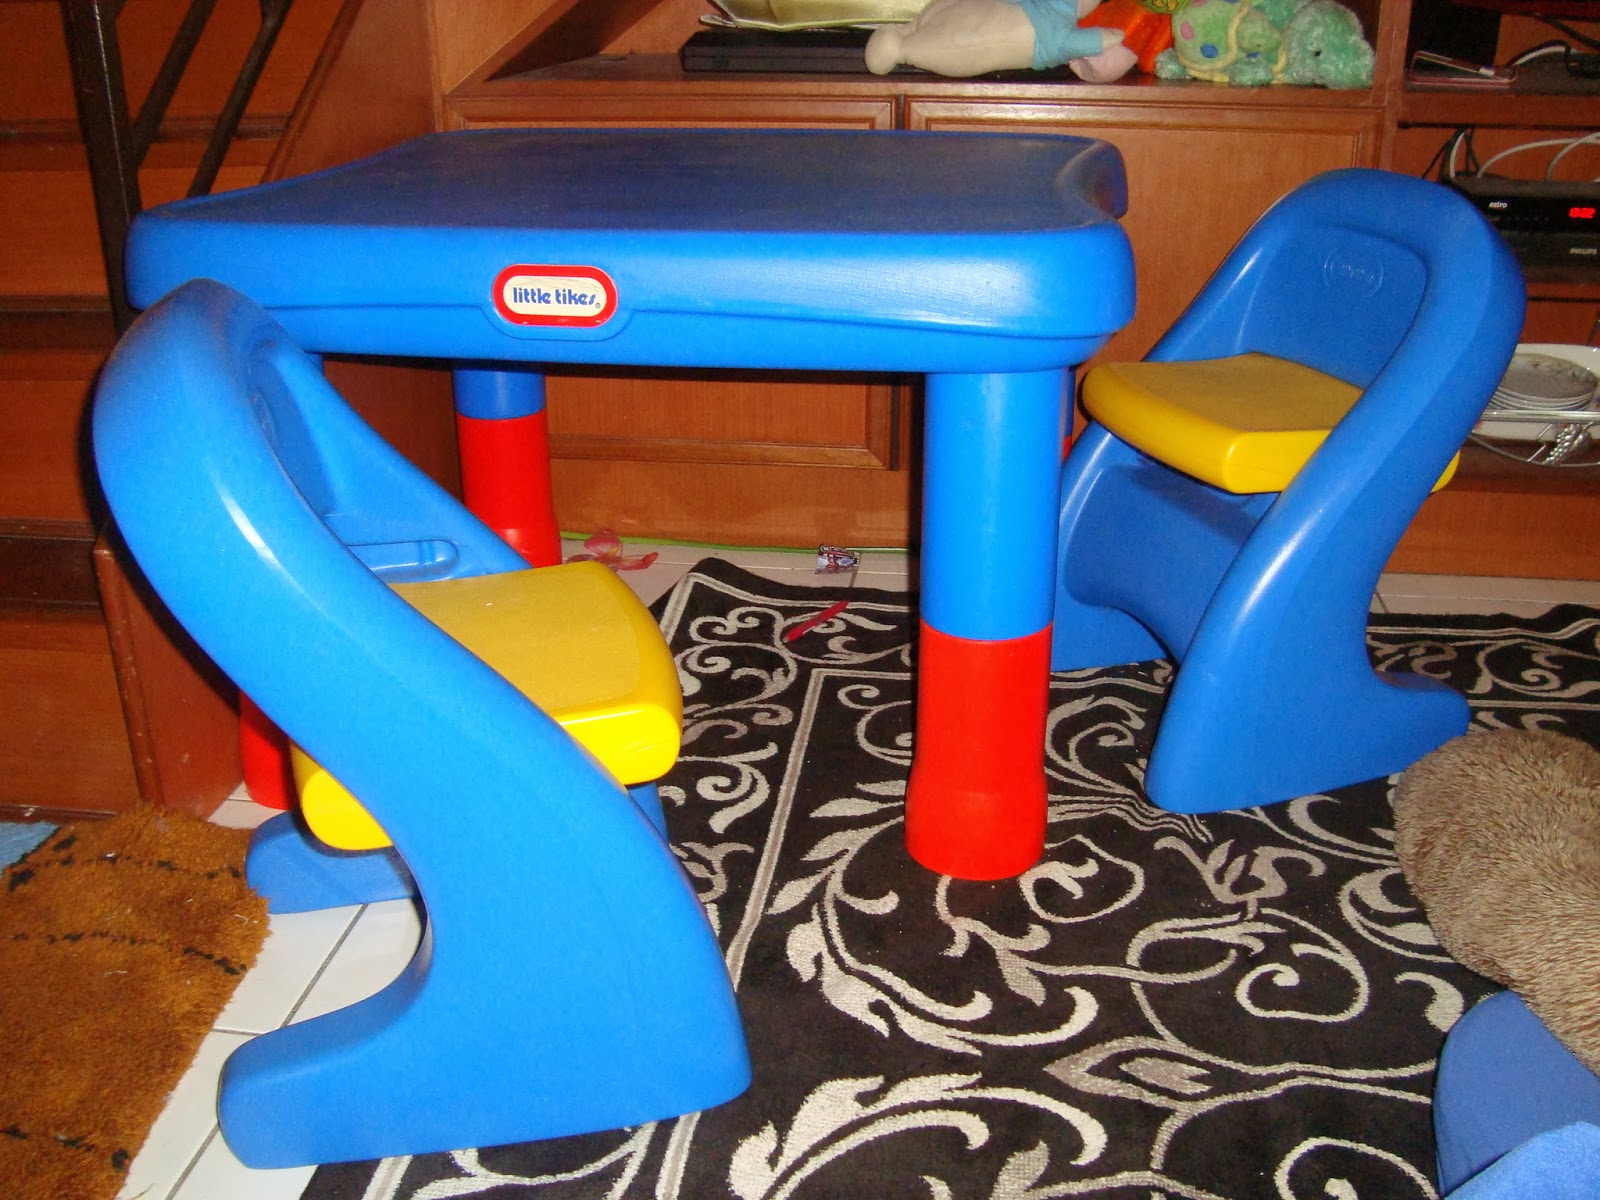 Little tikes adjustable table and chairs - Because Kids Grow So Fast This Little Tikes Adjustable Table Chair Set Can Be Adjusted To Different Heights Table Easily Adjusts To 4 Heights 20 21